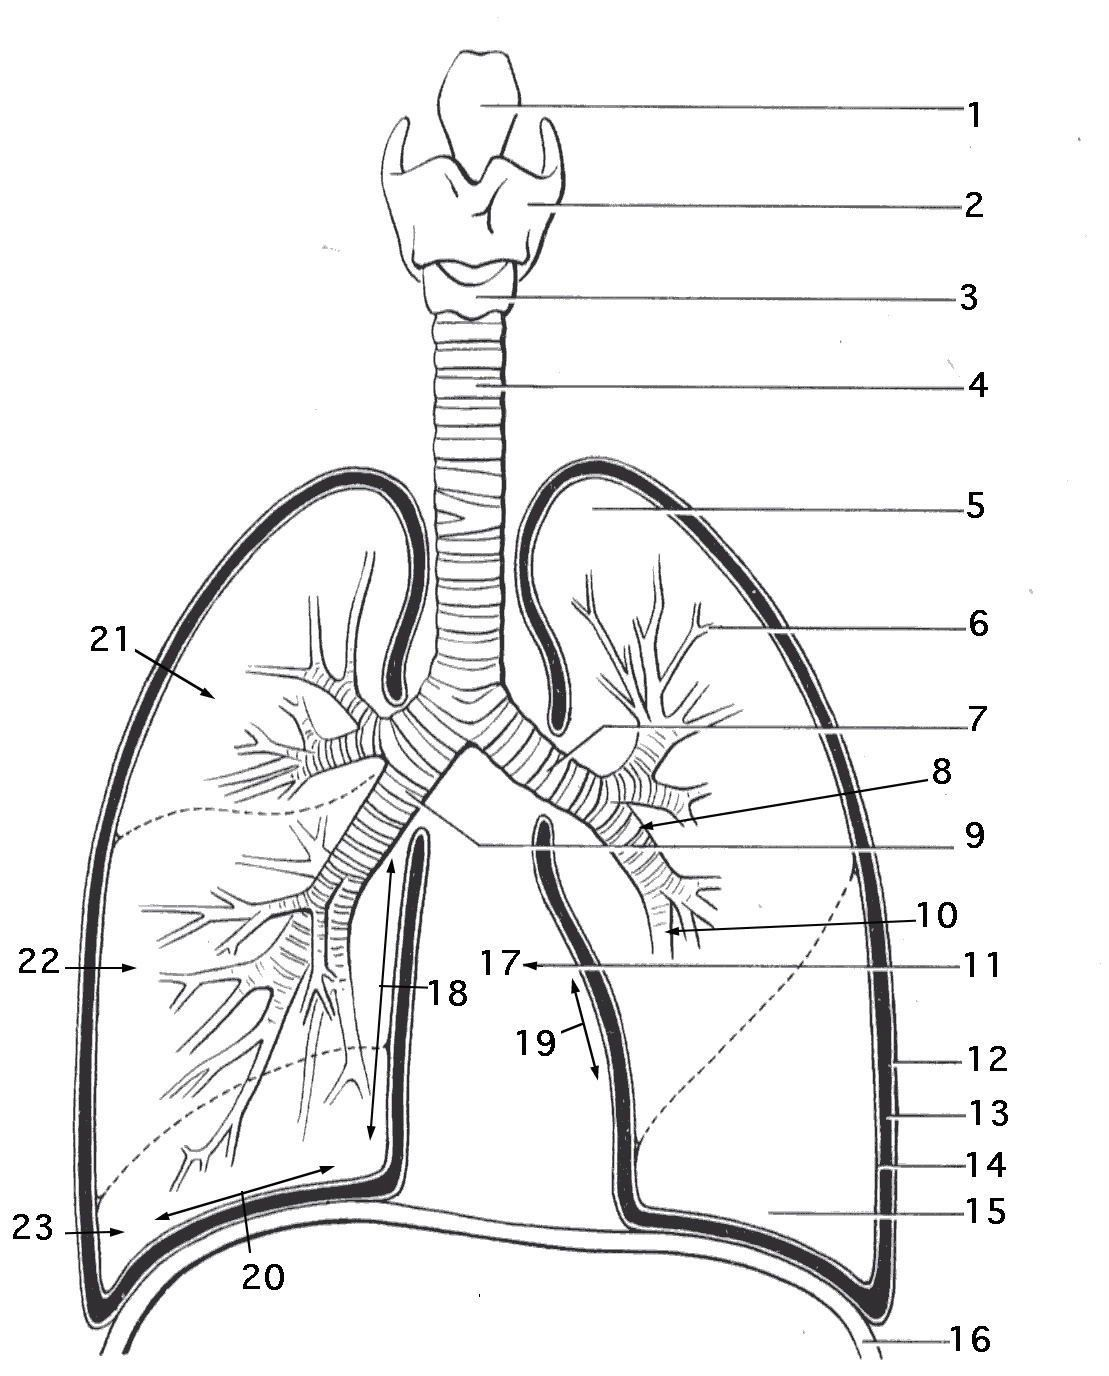 Anatomy Coloring Pages Lung Anatomy Coloring Page Respiratory